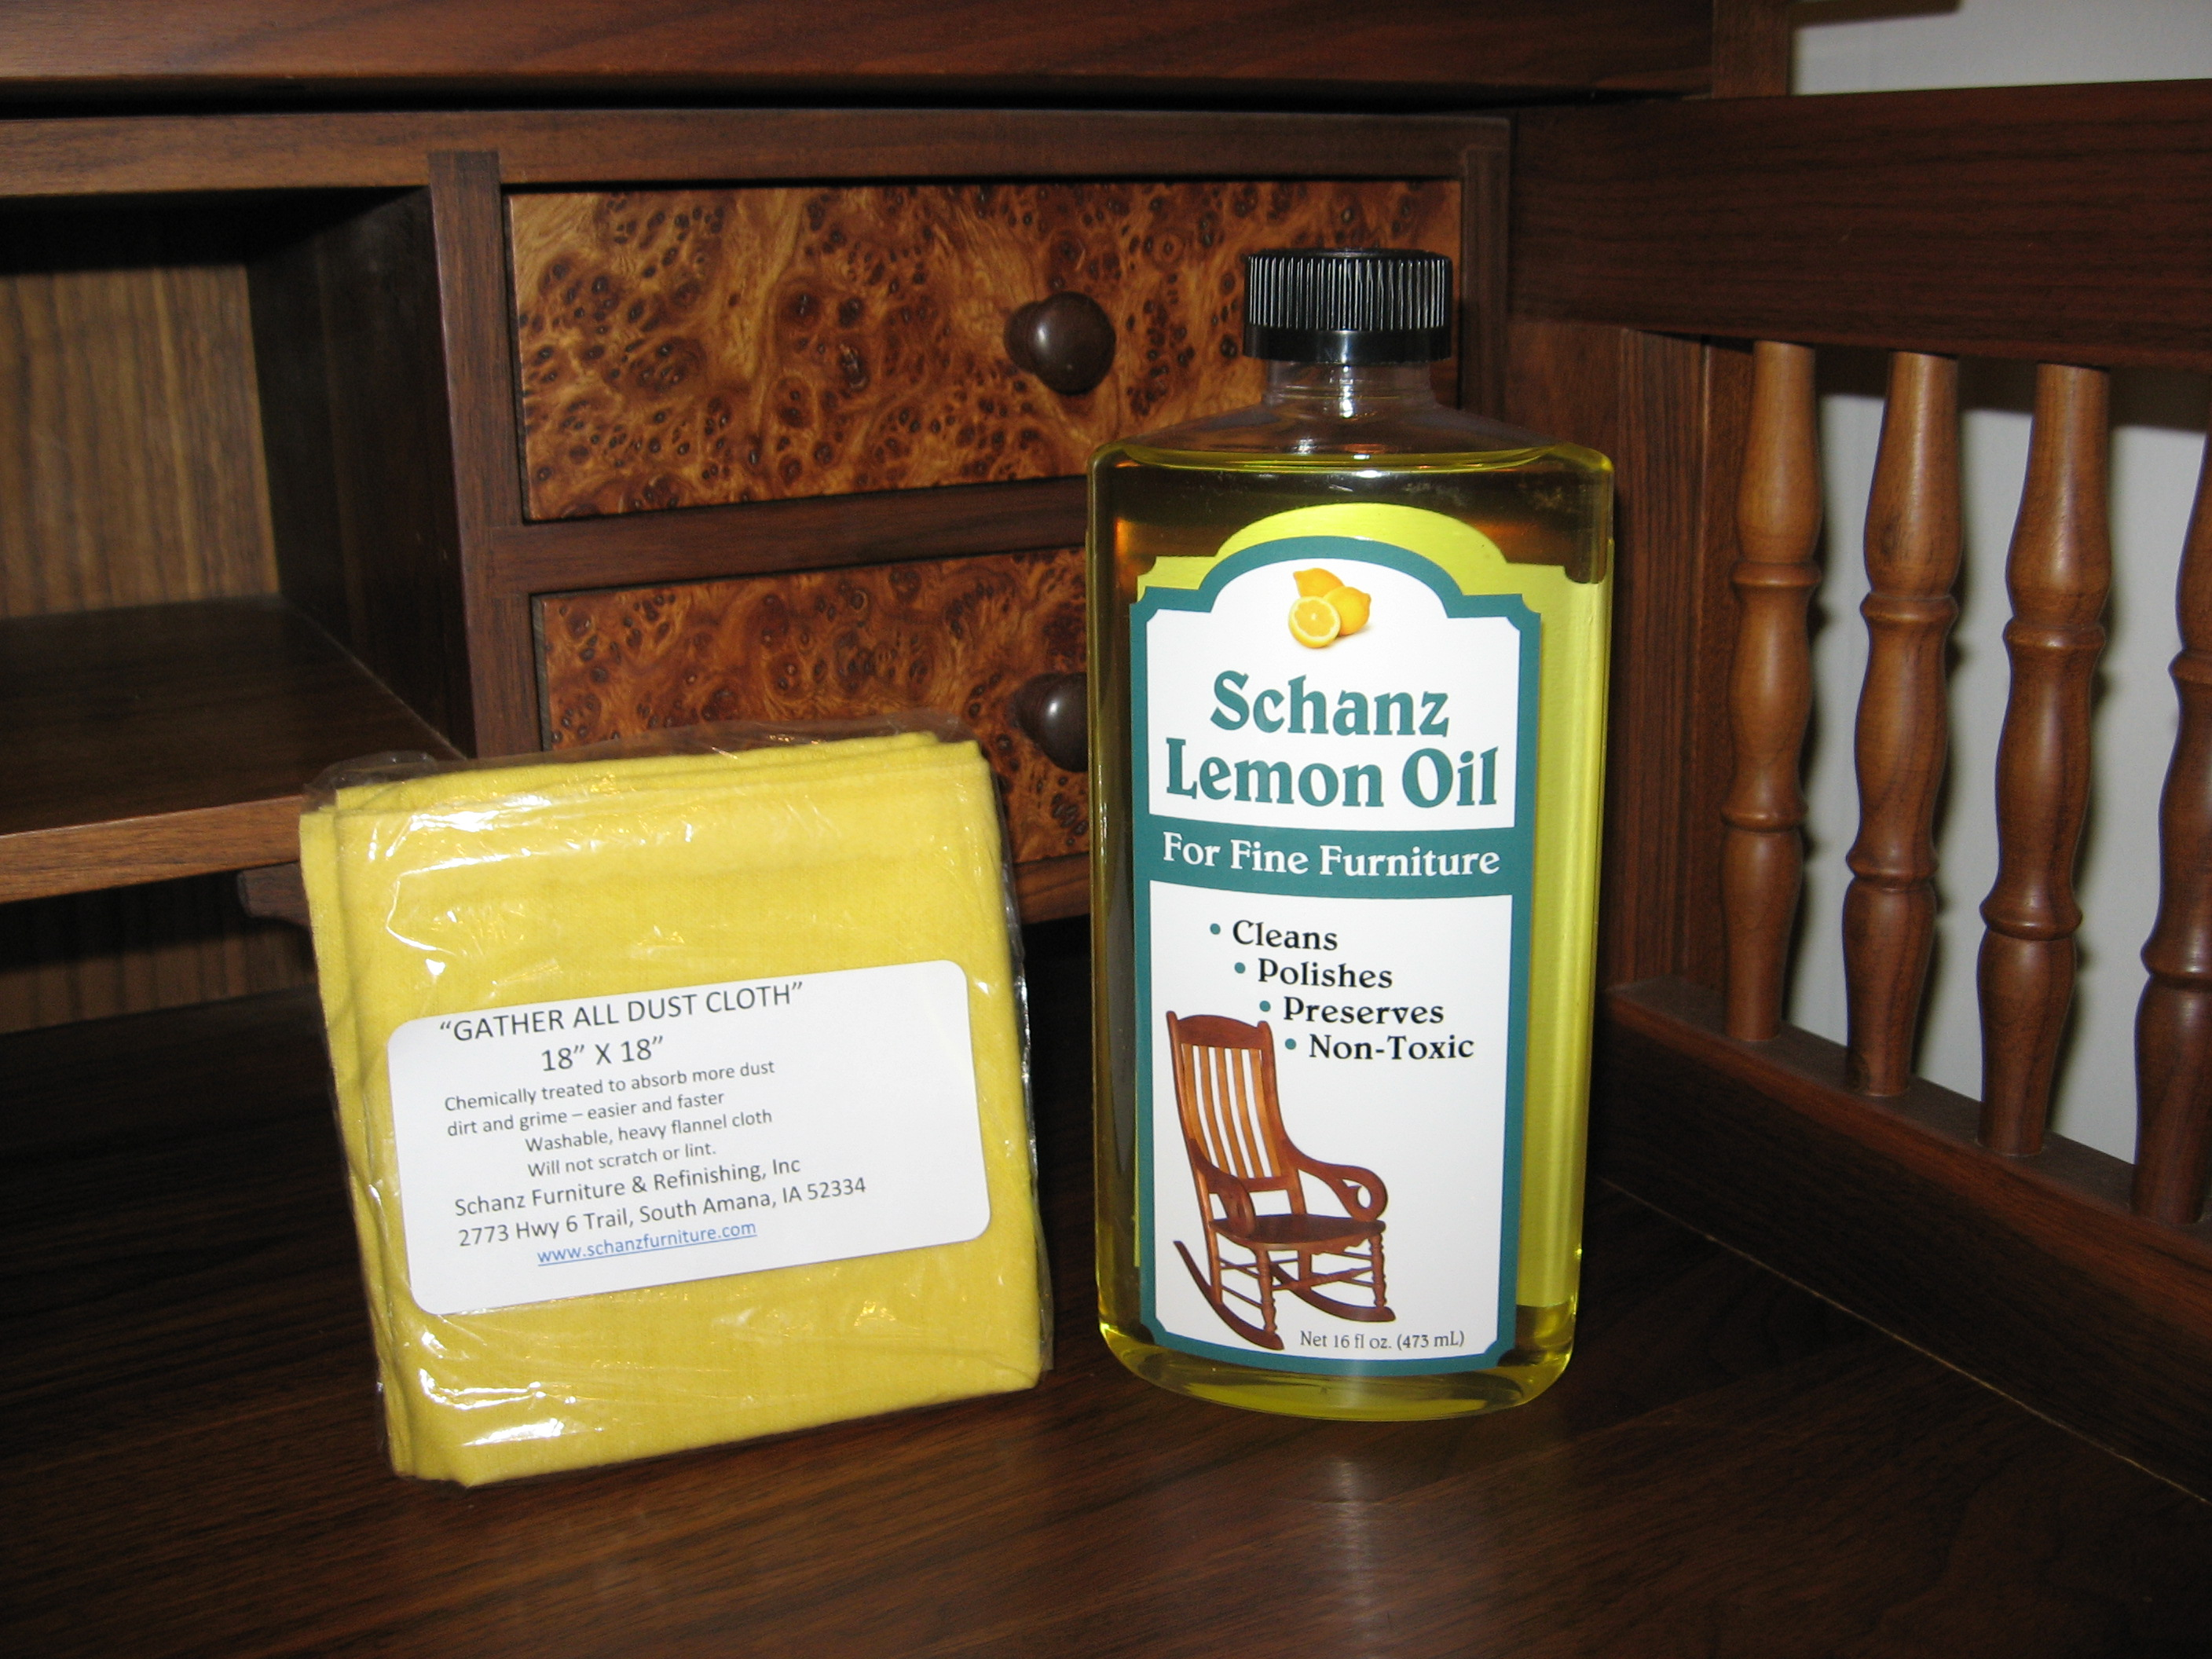 Lemon Oil Dust Cloth Schanz Furniture And Refinishing